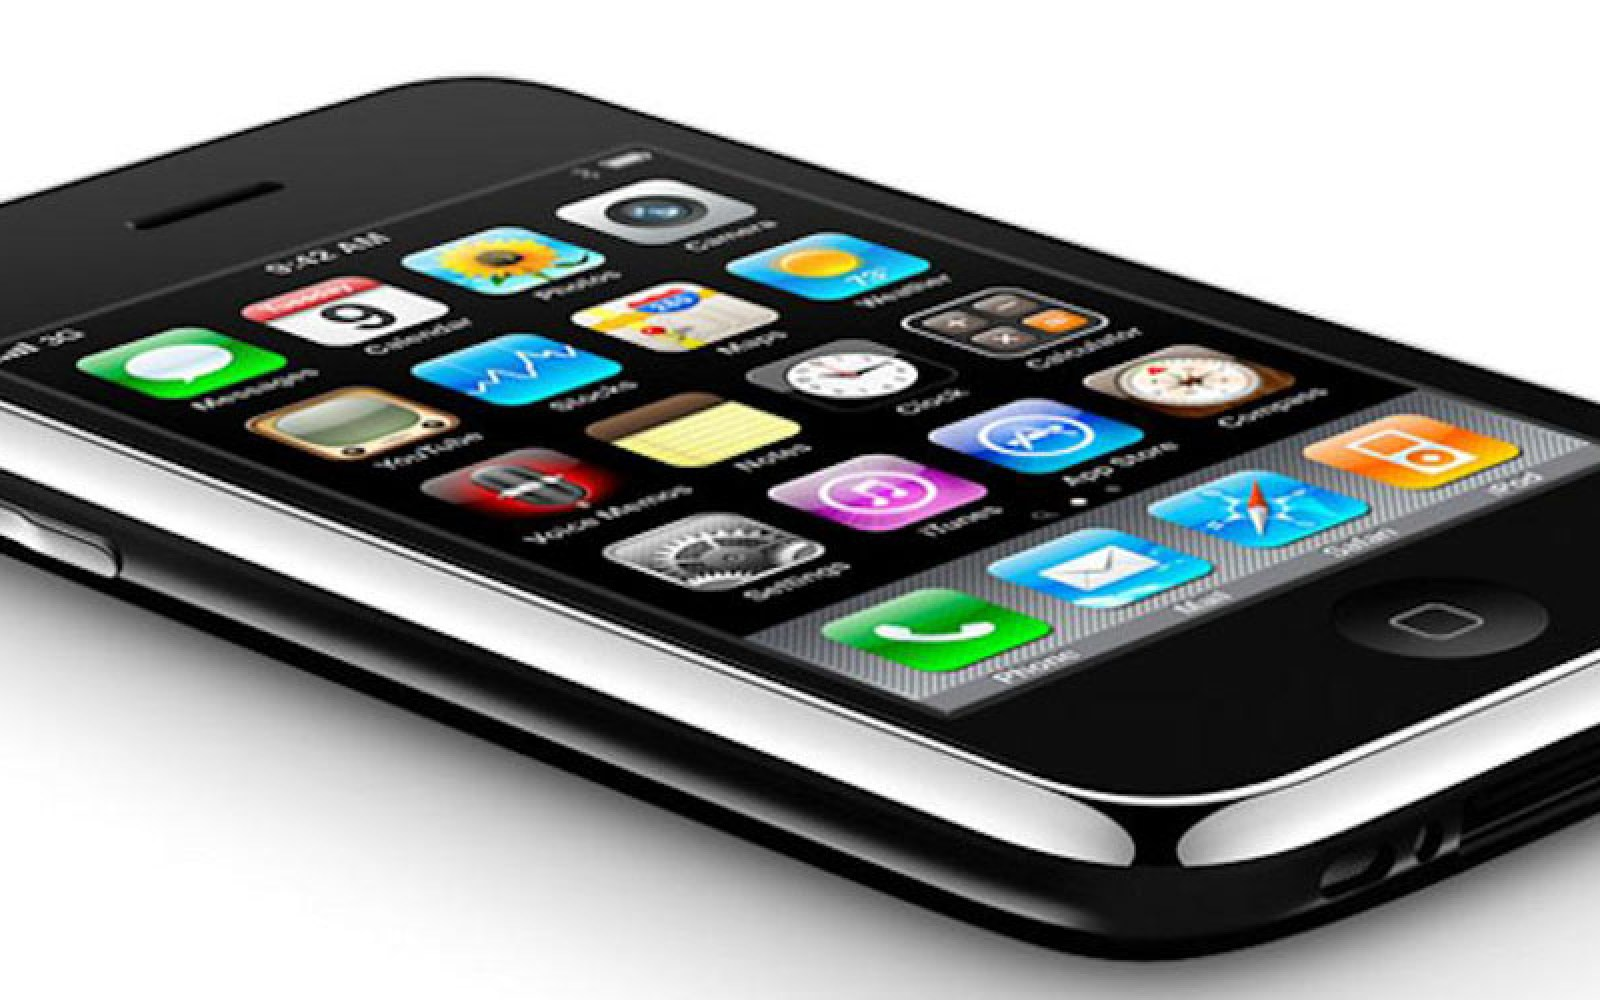 Samsung looks likely to win Supreme Court appeal against damages in Apple patent case